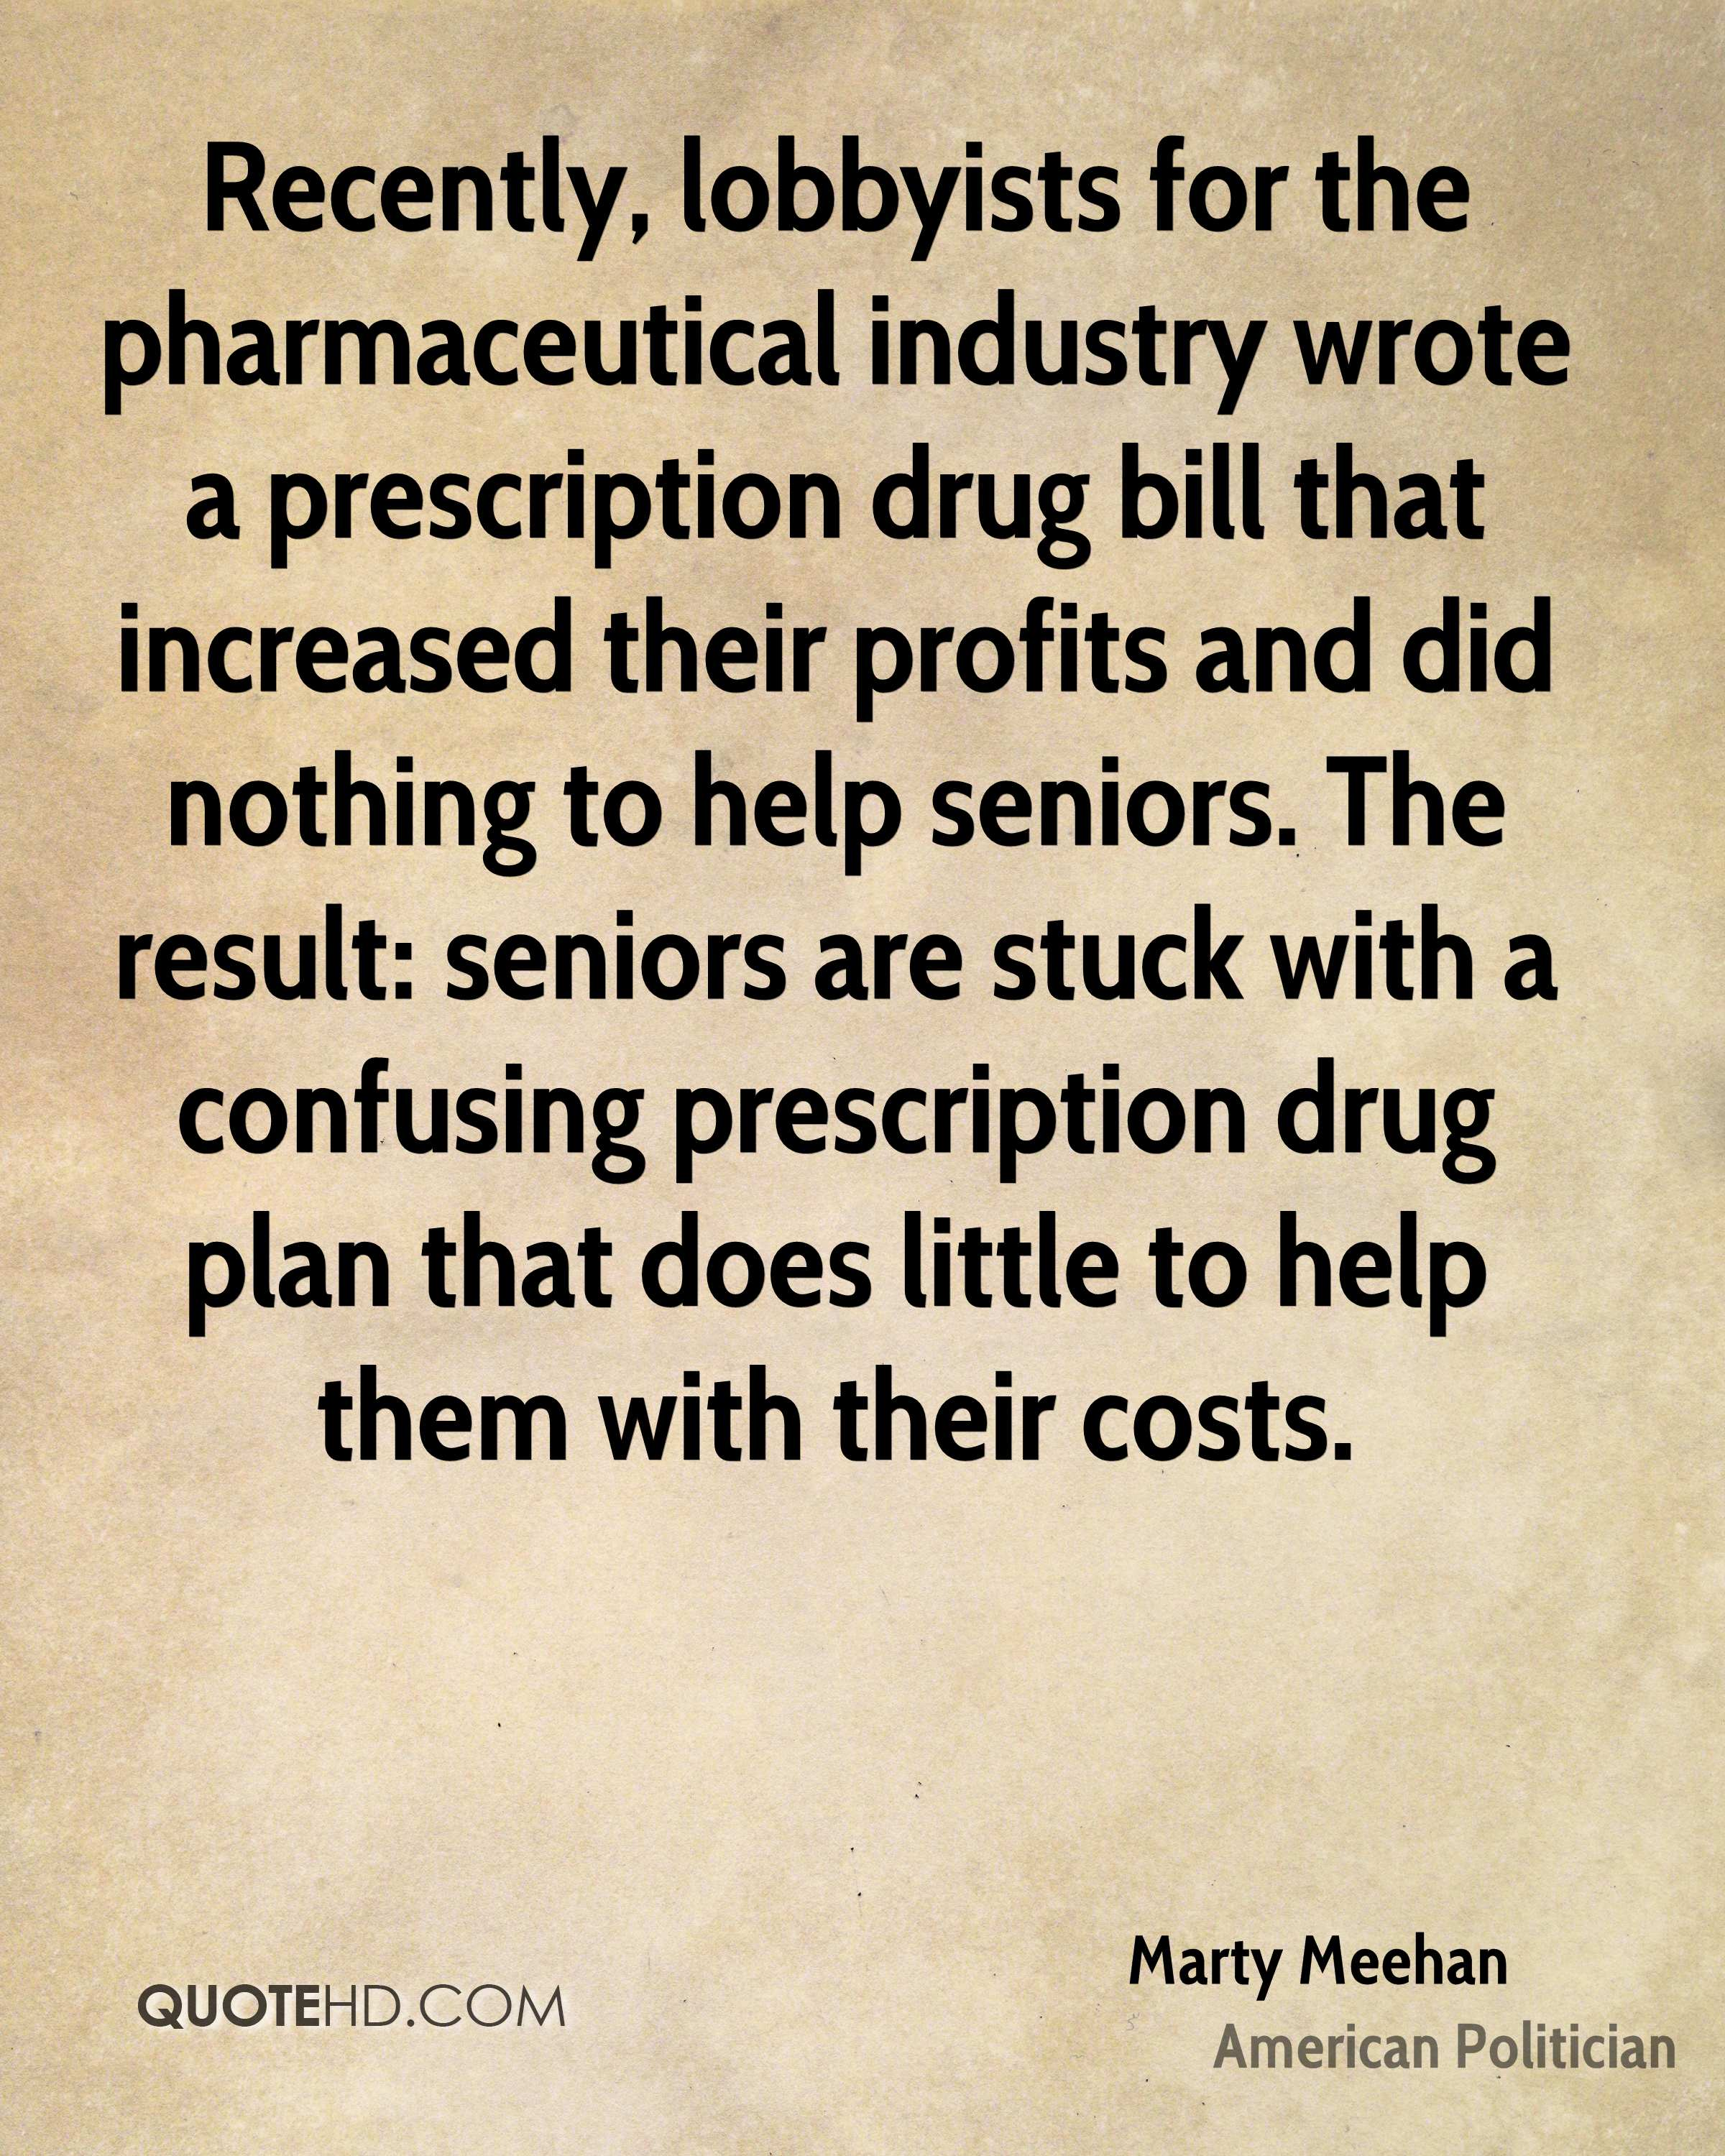 Recently, lobbyists for the pharmaceutical industry wrote a prescription drug bill that increased their profits and did nothing to help seniors. The result: seniors are stuck with a confusing prescription drug plan that does little to help them with their costs.